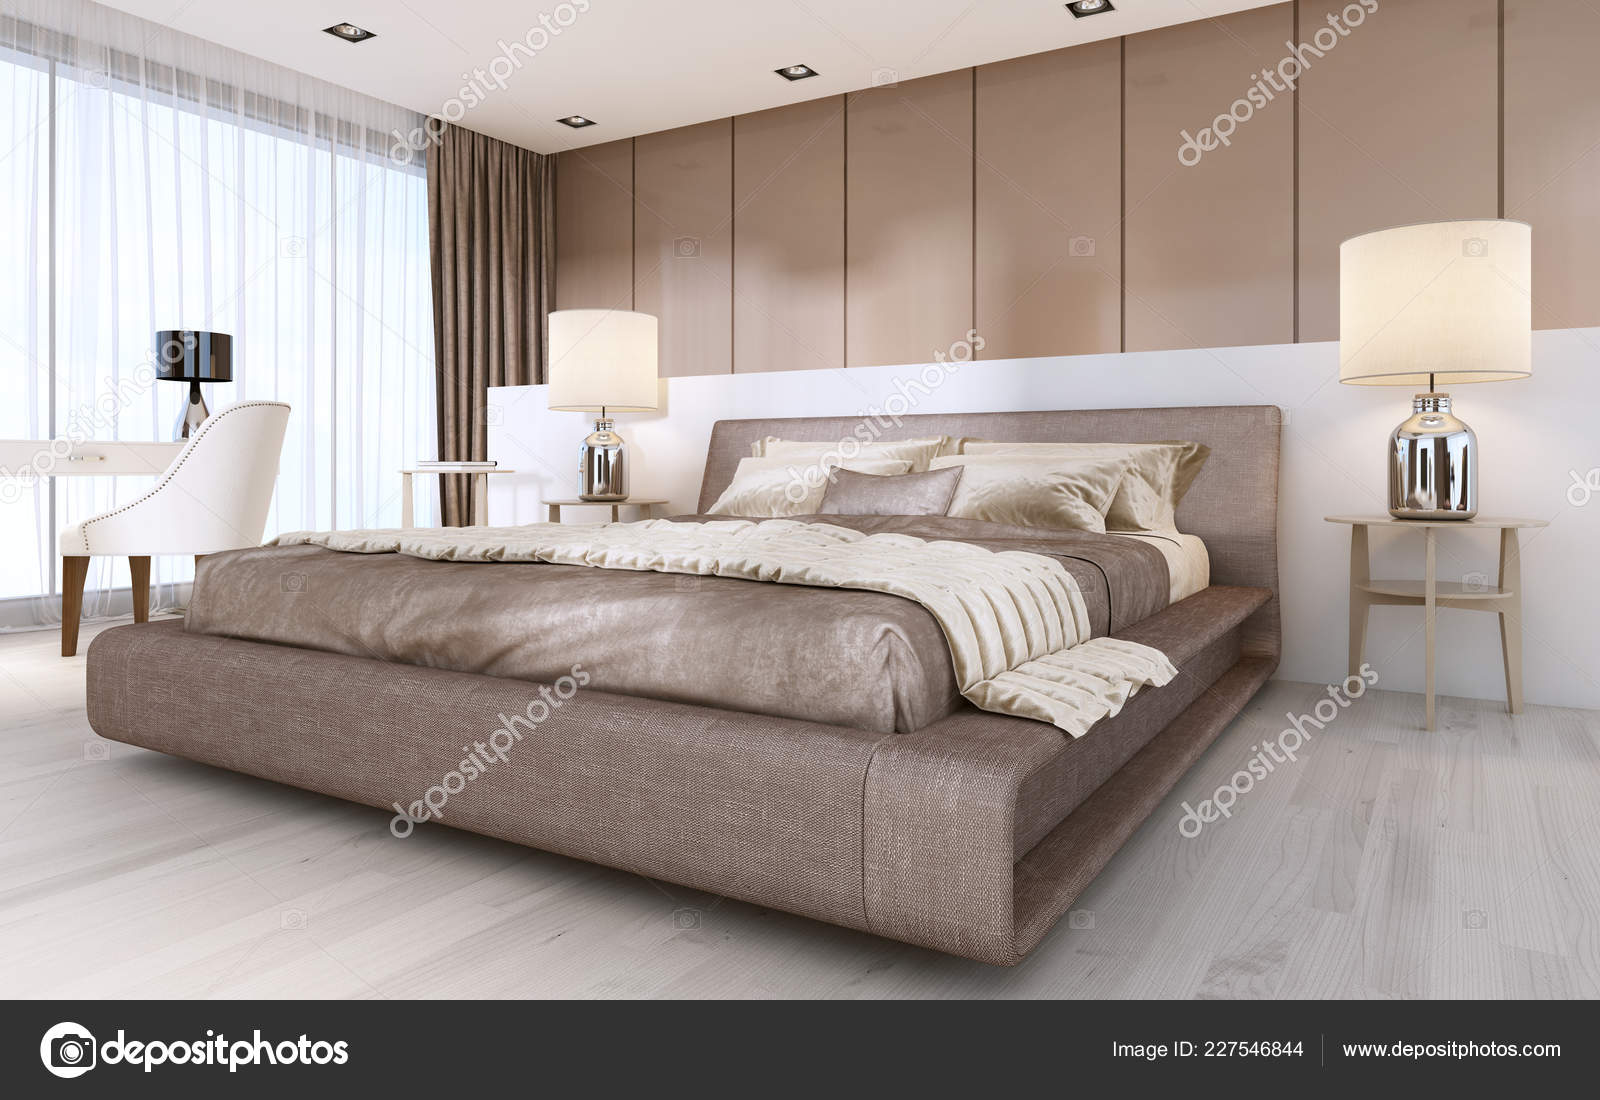 Large Bed Modern Style Bedside Tables Lamps Rendering Stock Photo Image By C Kuprin33 227546844